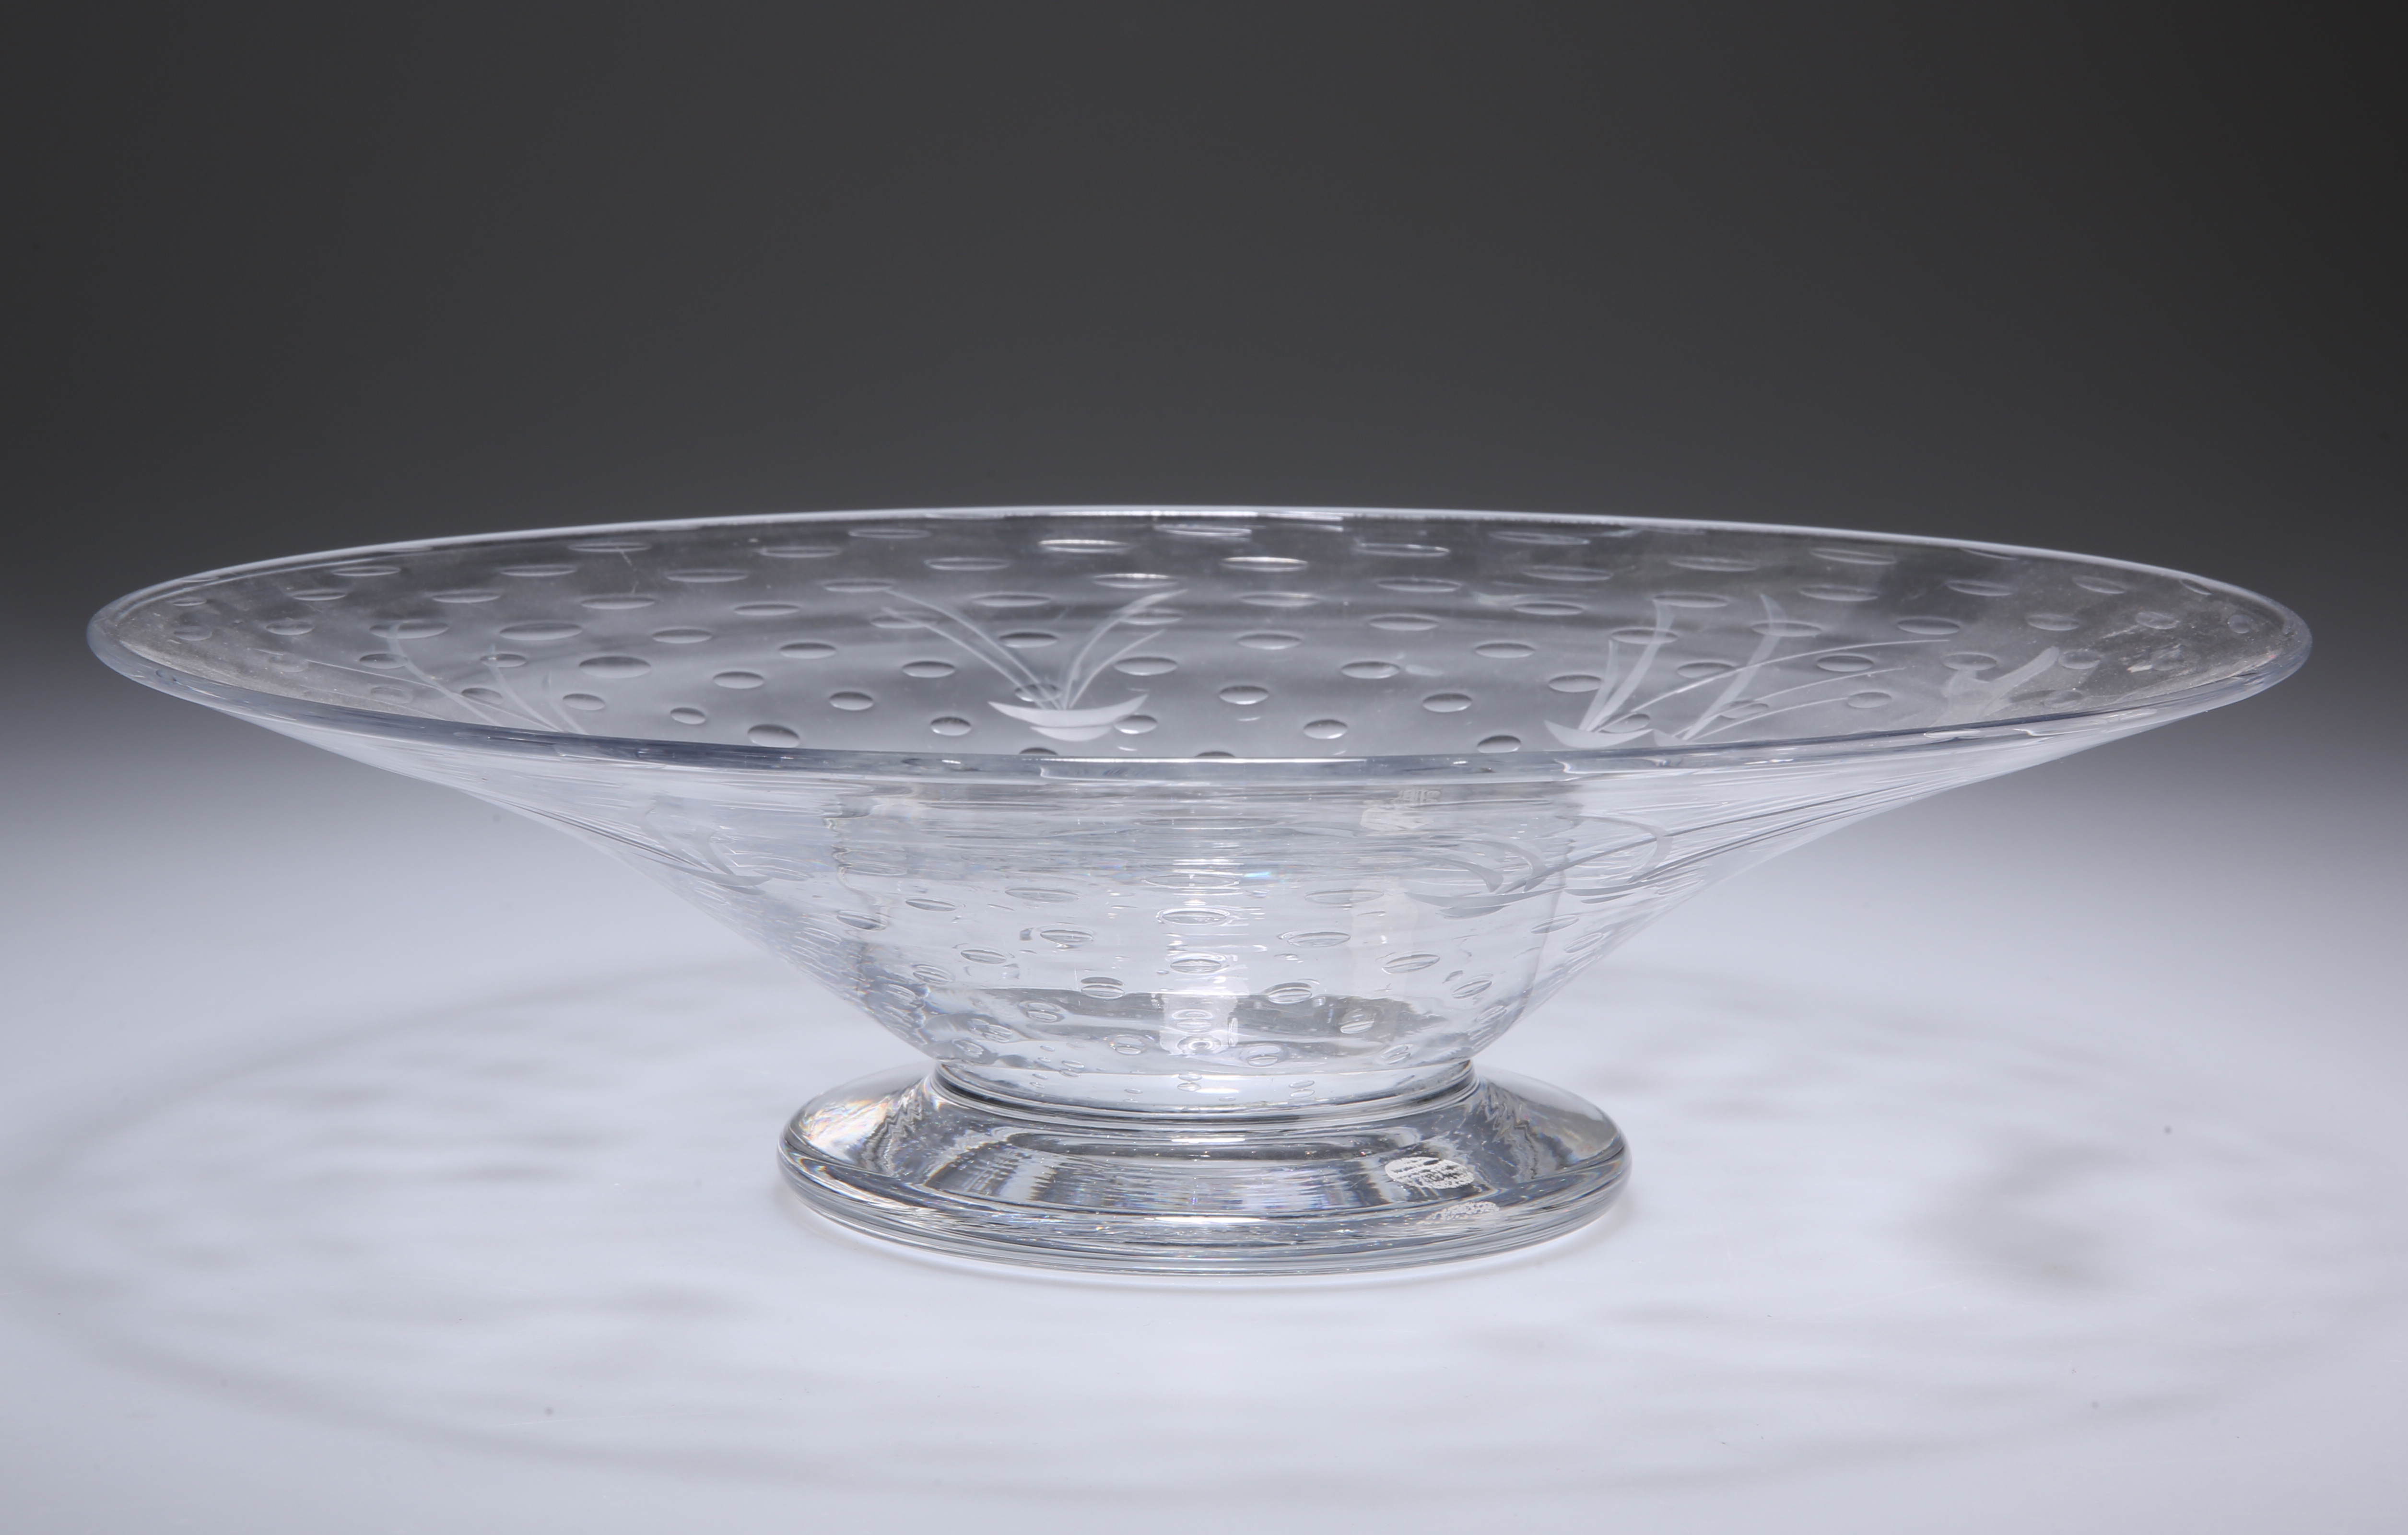 THOMAS WEBB & SONS AN EARLY 20TH CENTURY GLASS BOWL - Image 3 of 4